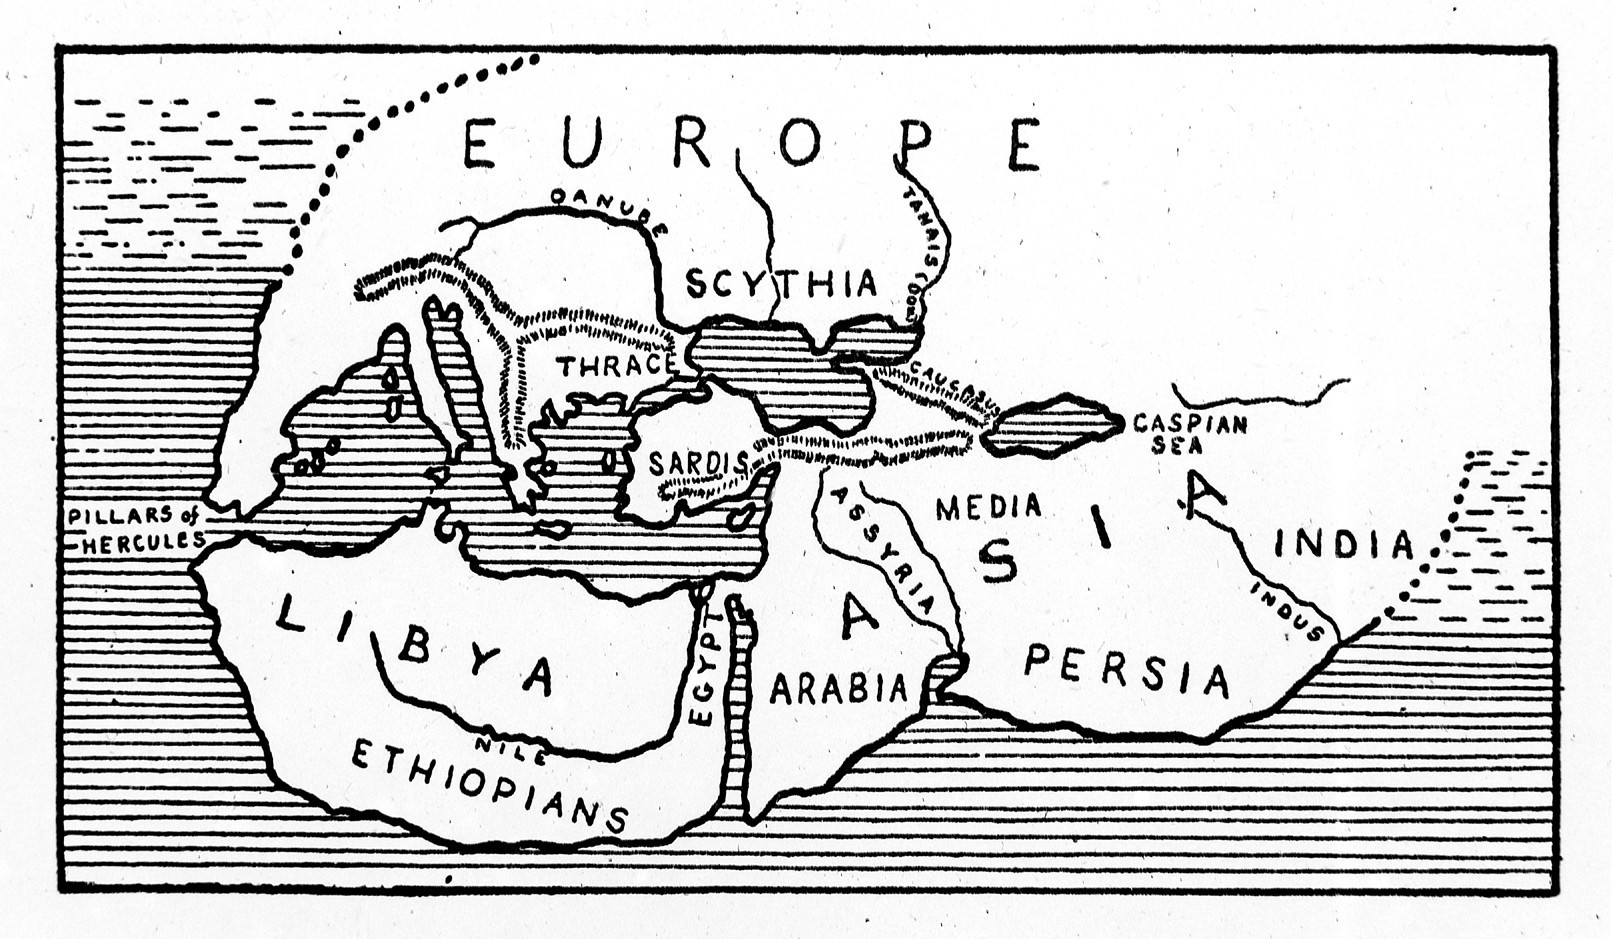 Line drawing map of the world according to Herodotus